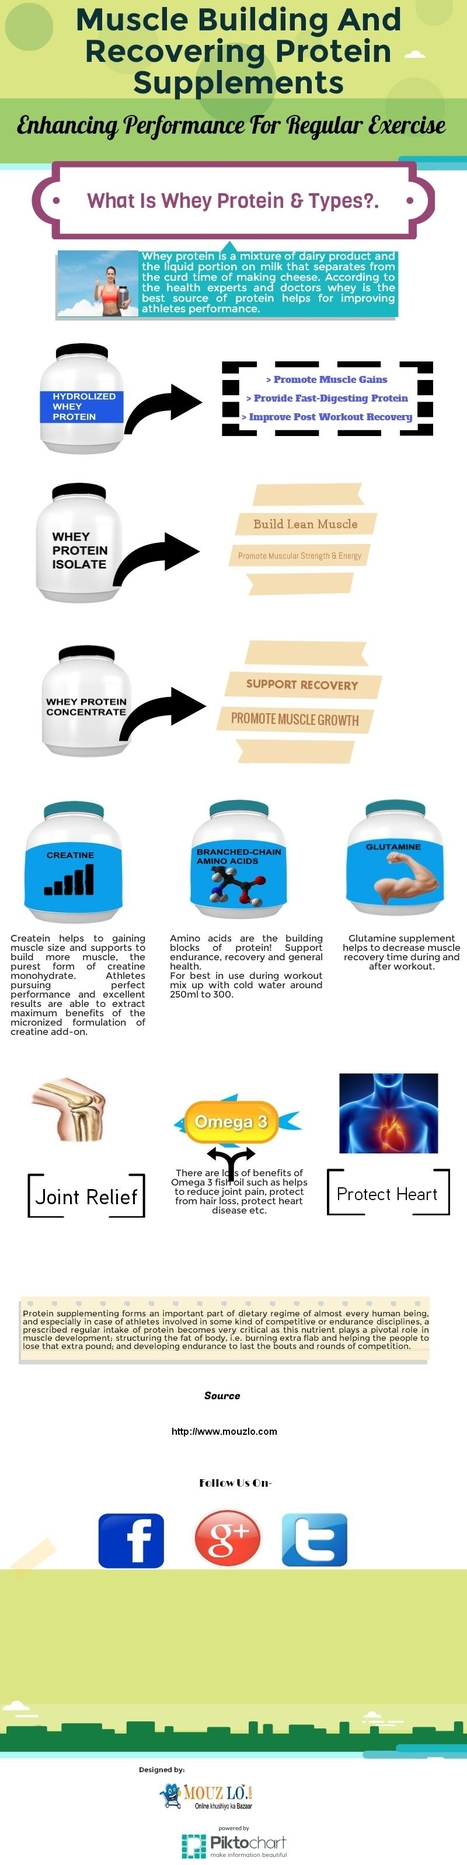 Muscle Building Protein Supplements | Visual.ly | Health | Fitness | Bodybuilding Supplement | Scoop.it